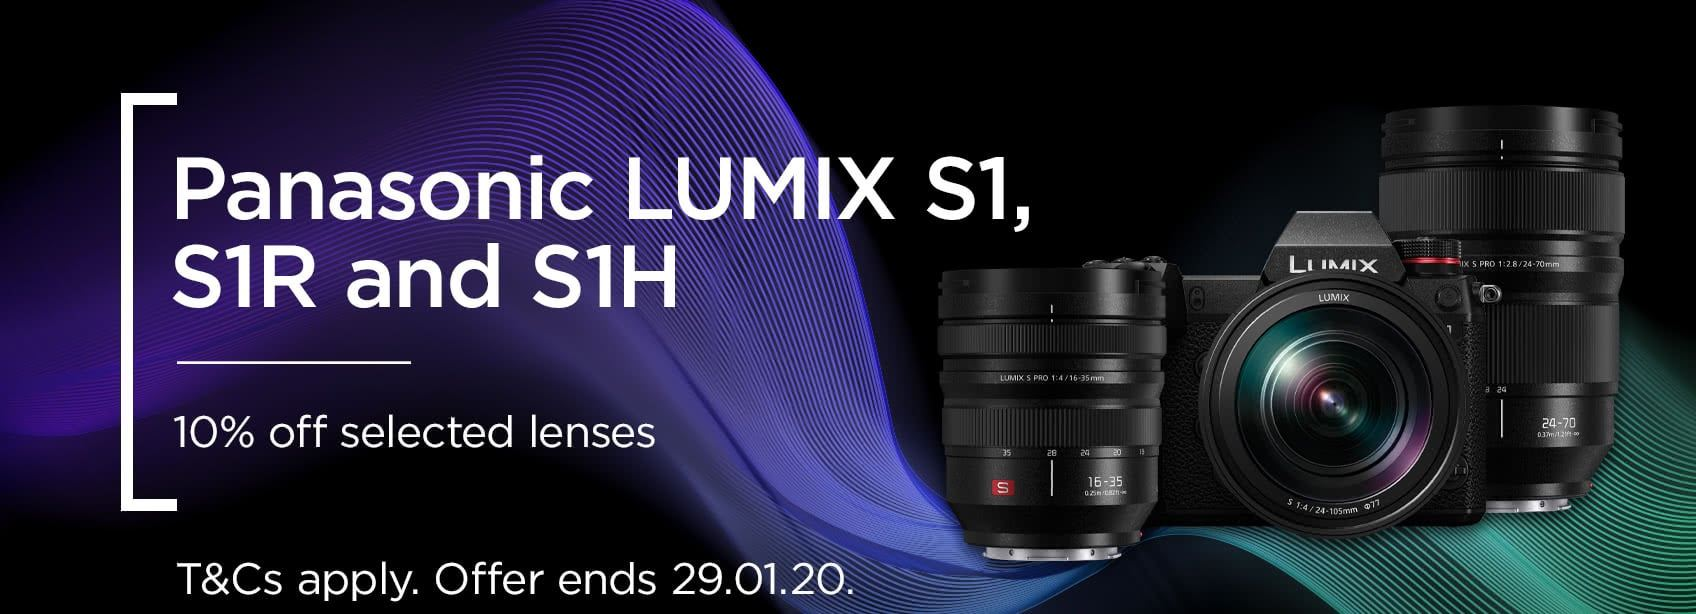 Panasonic LUMIX S1, S1R and S1H - 10% off selected lenses